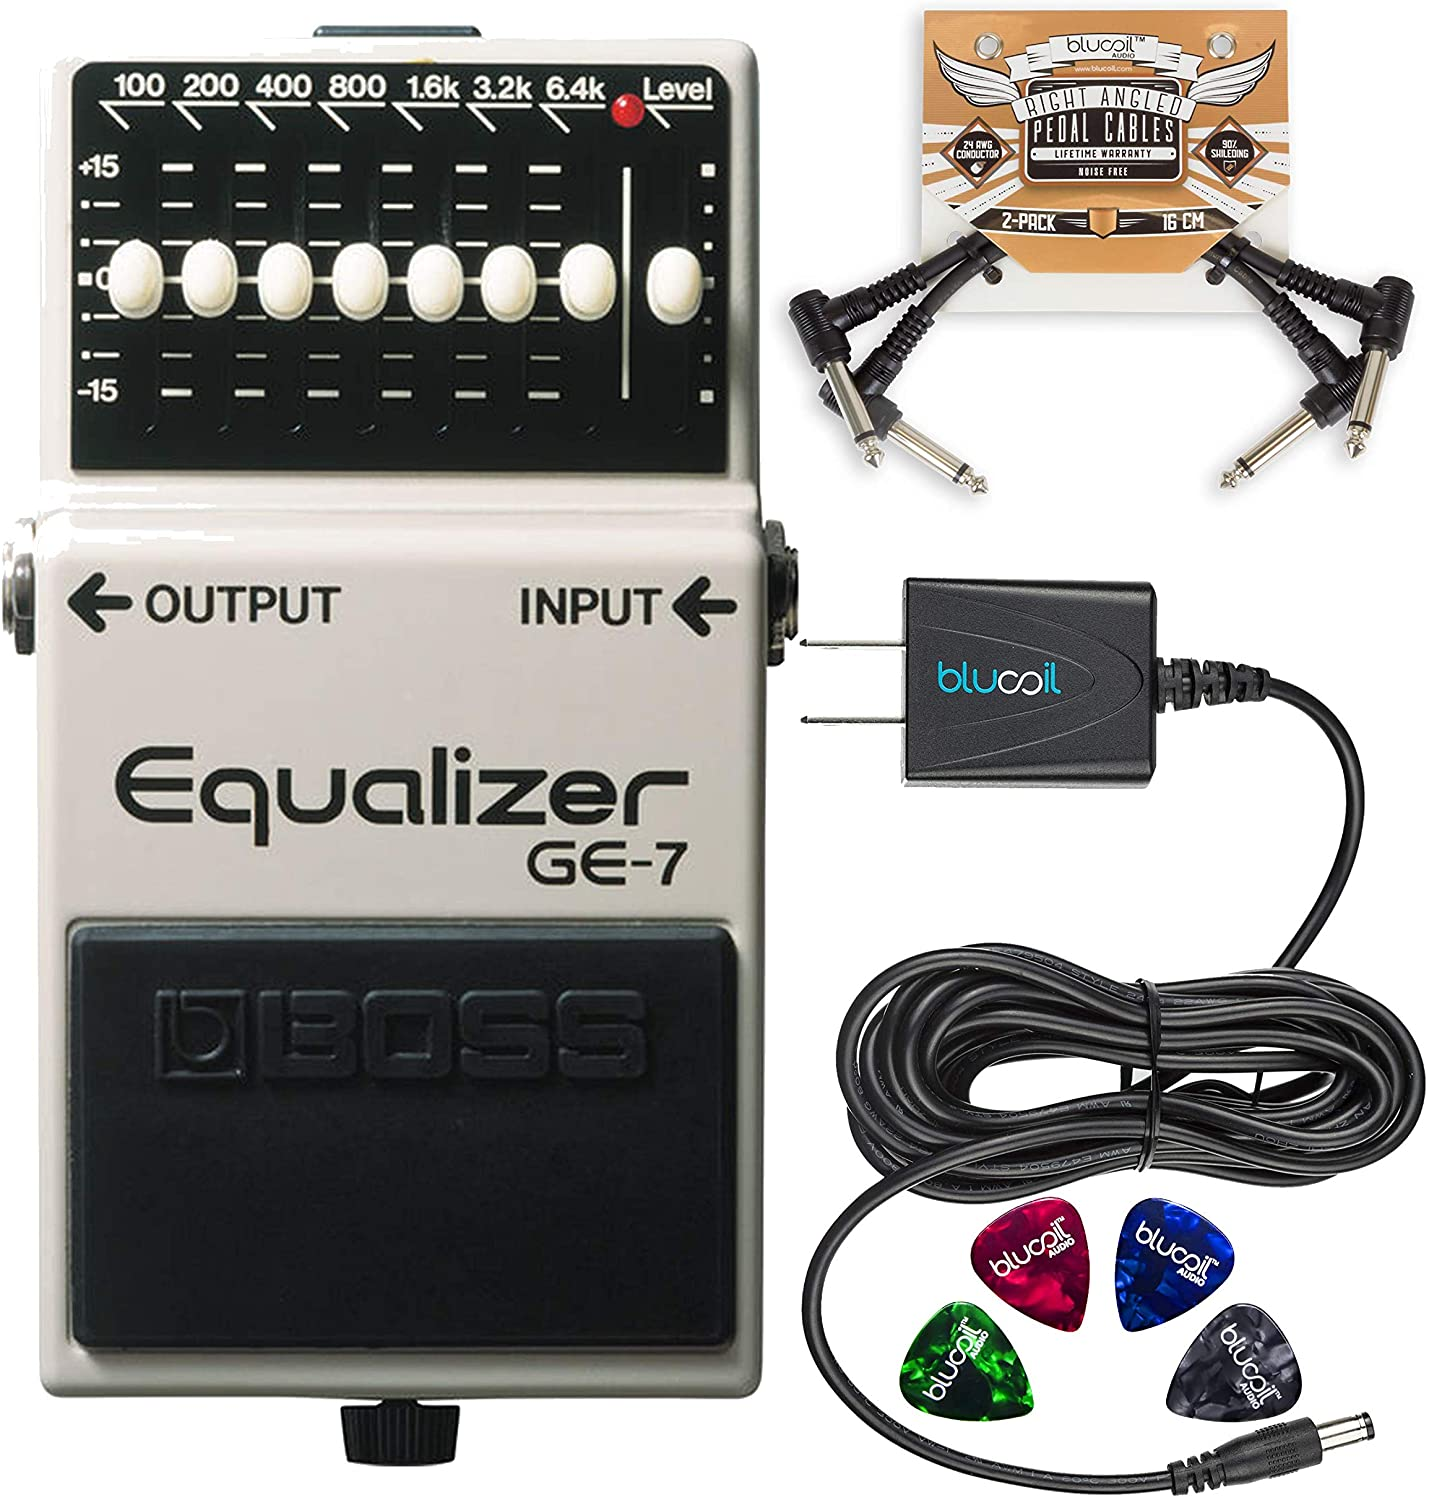 BOSS GE-7 Equalizer Pedal with 7 Band EQ Bundle with Blucoil Slim 9V Power Supply AC Adapter, 2-Pack of Pedal Patch Cables, and 4-Pack of Celluloid Guitar Picks